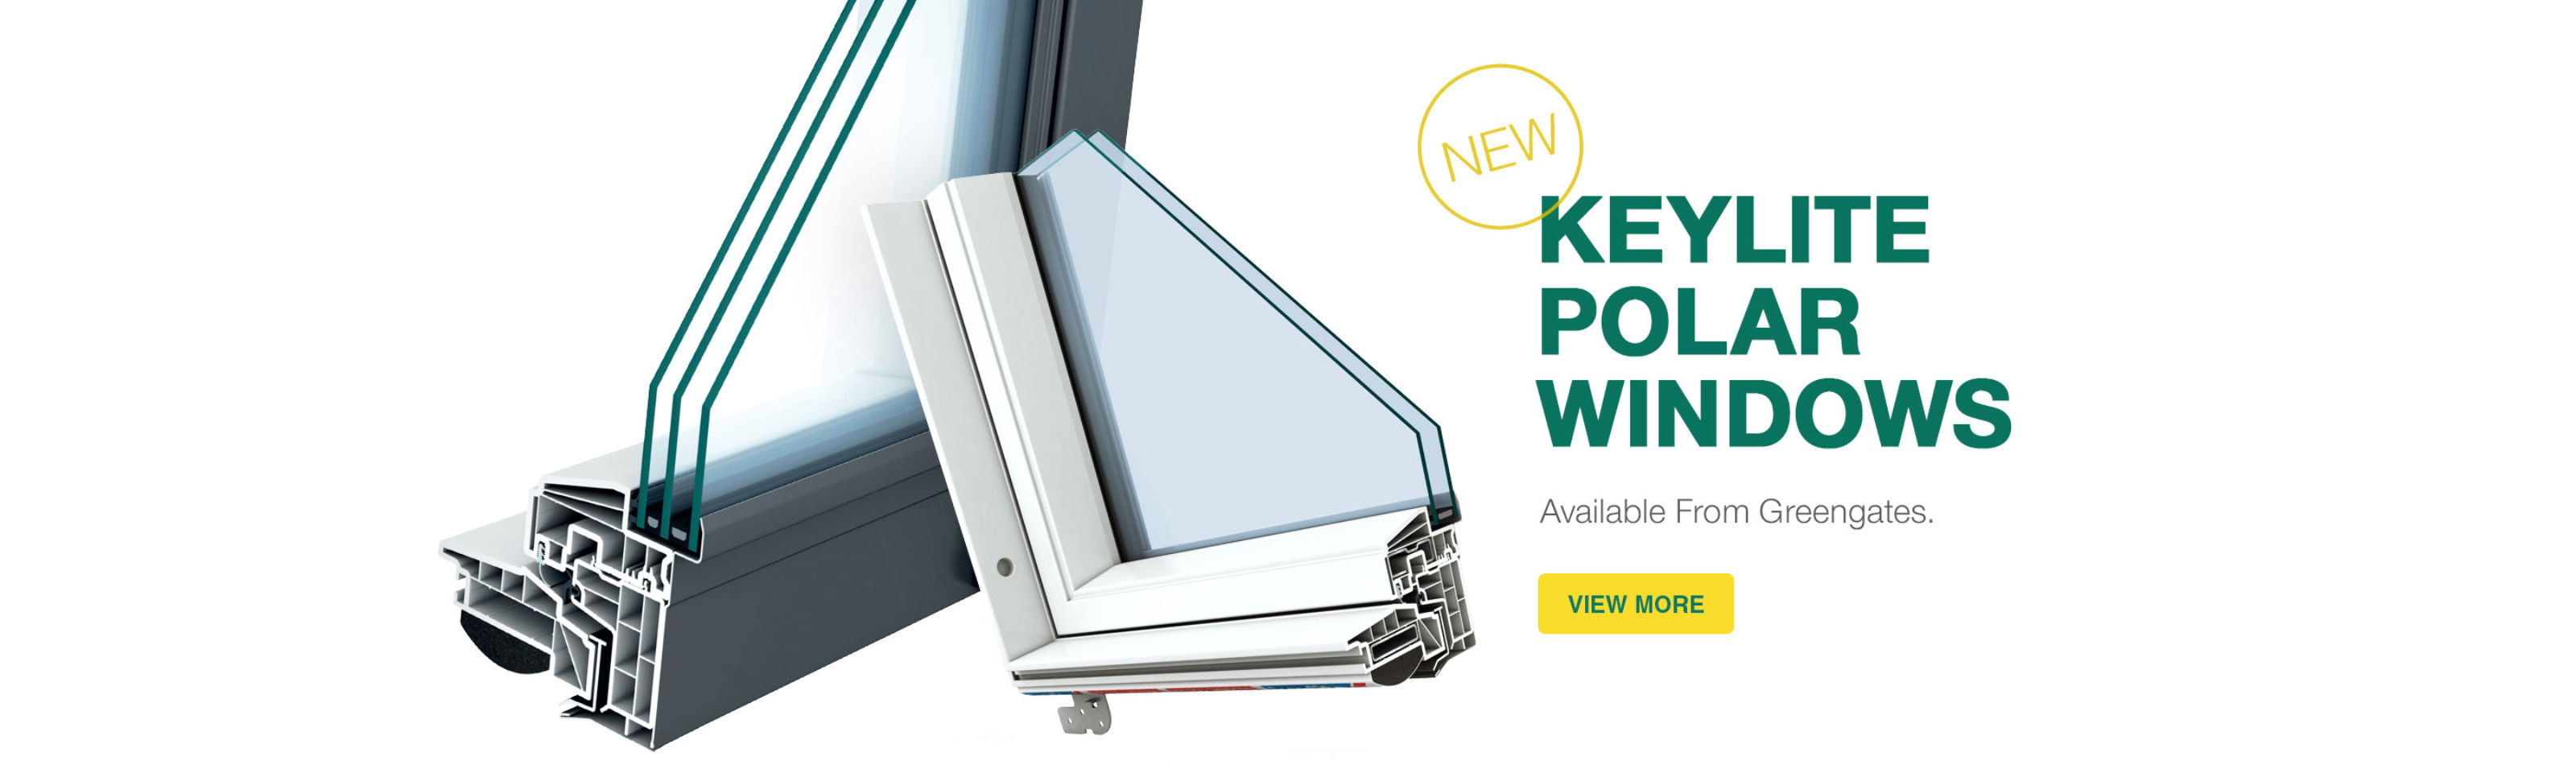 New Keylite Polar Windows.